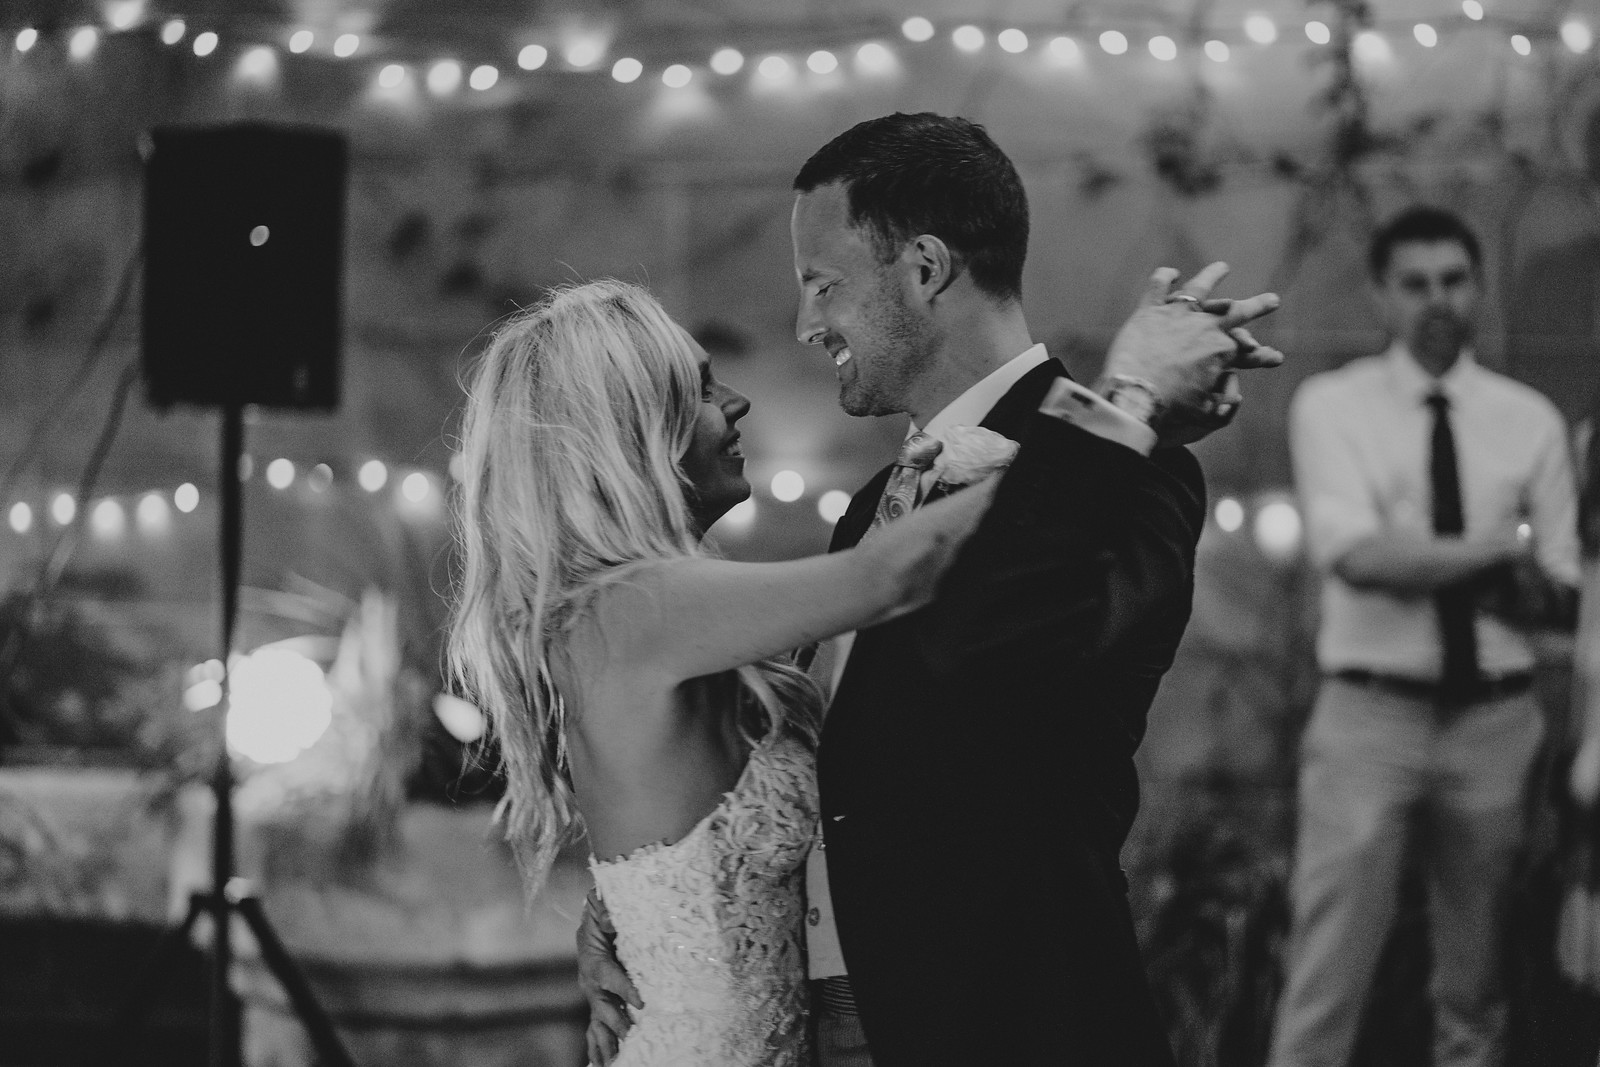 Bride and grooms fire dance, they smile at each other. Black and white image